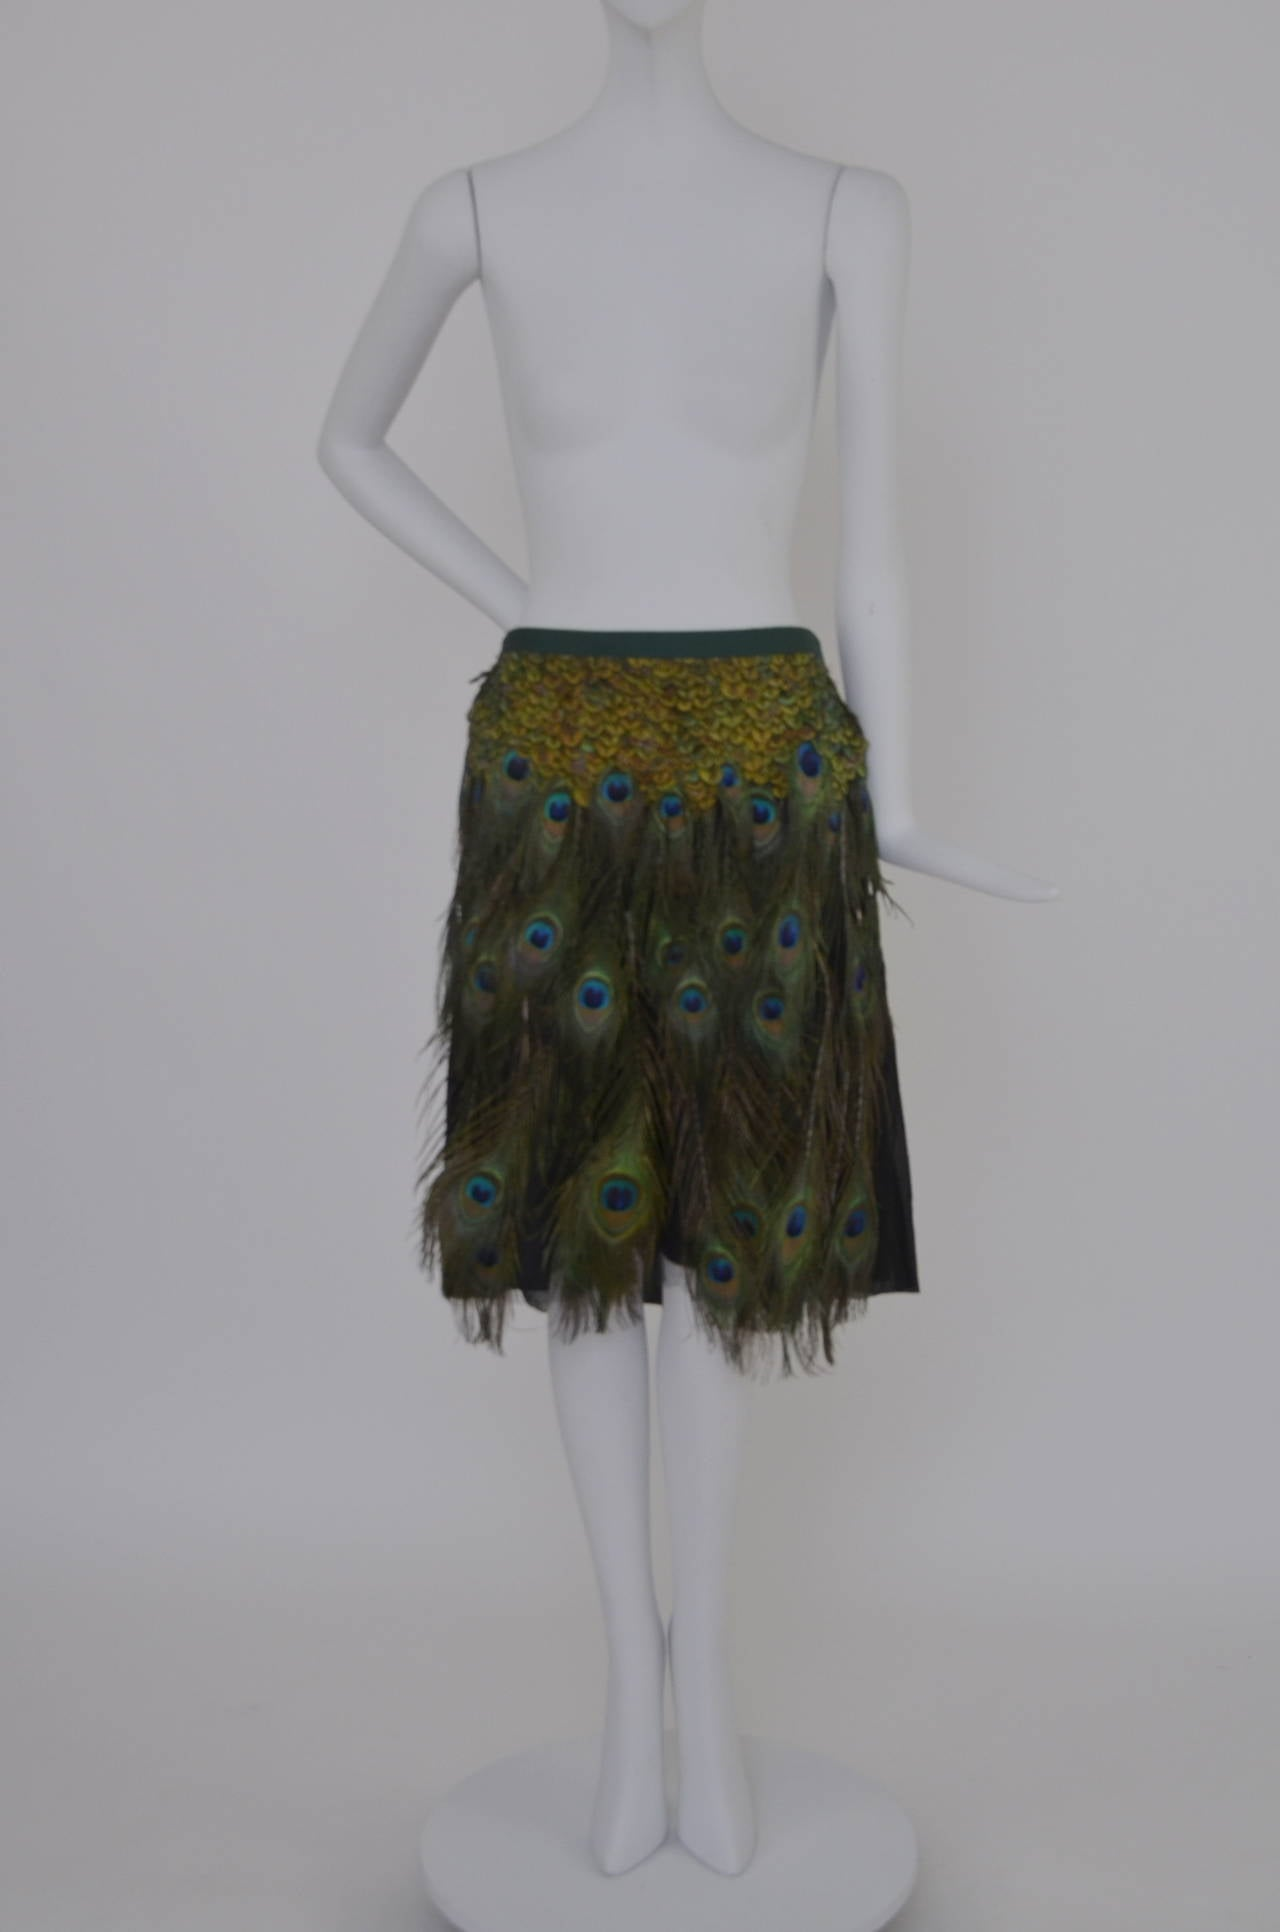 Prada Peacock  Runway Skirt  New 38 In New Never_worn Condition For Sale In Hollywood, FL